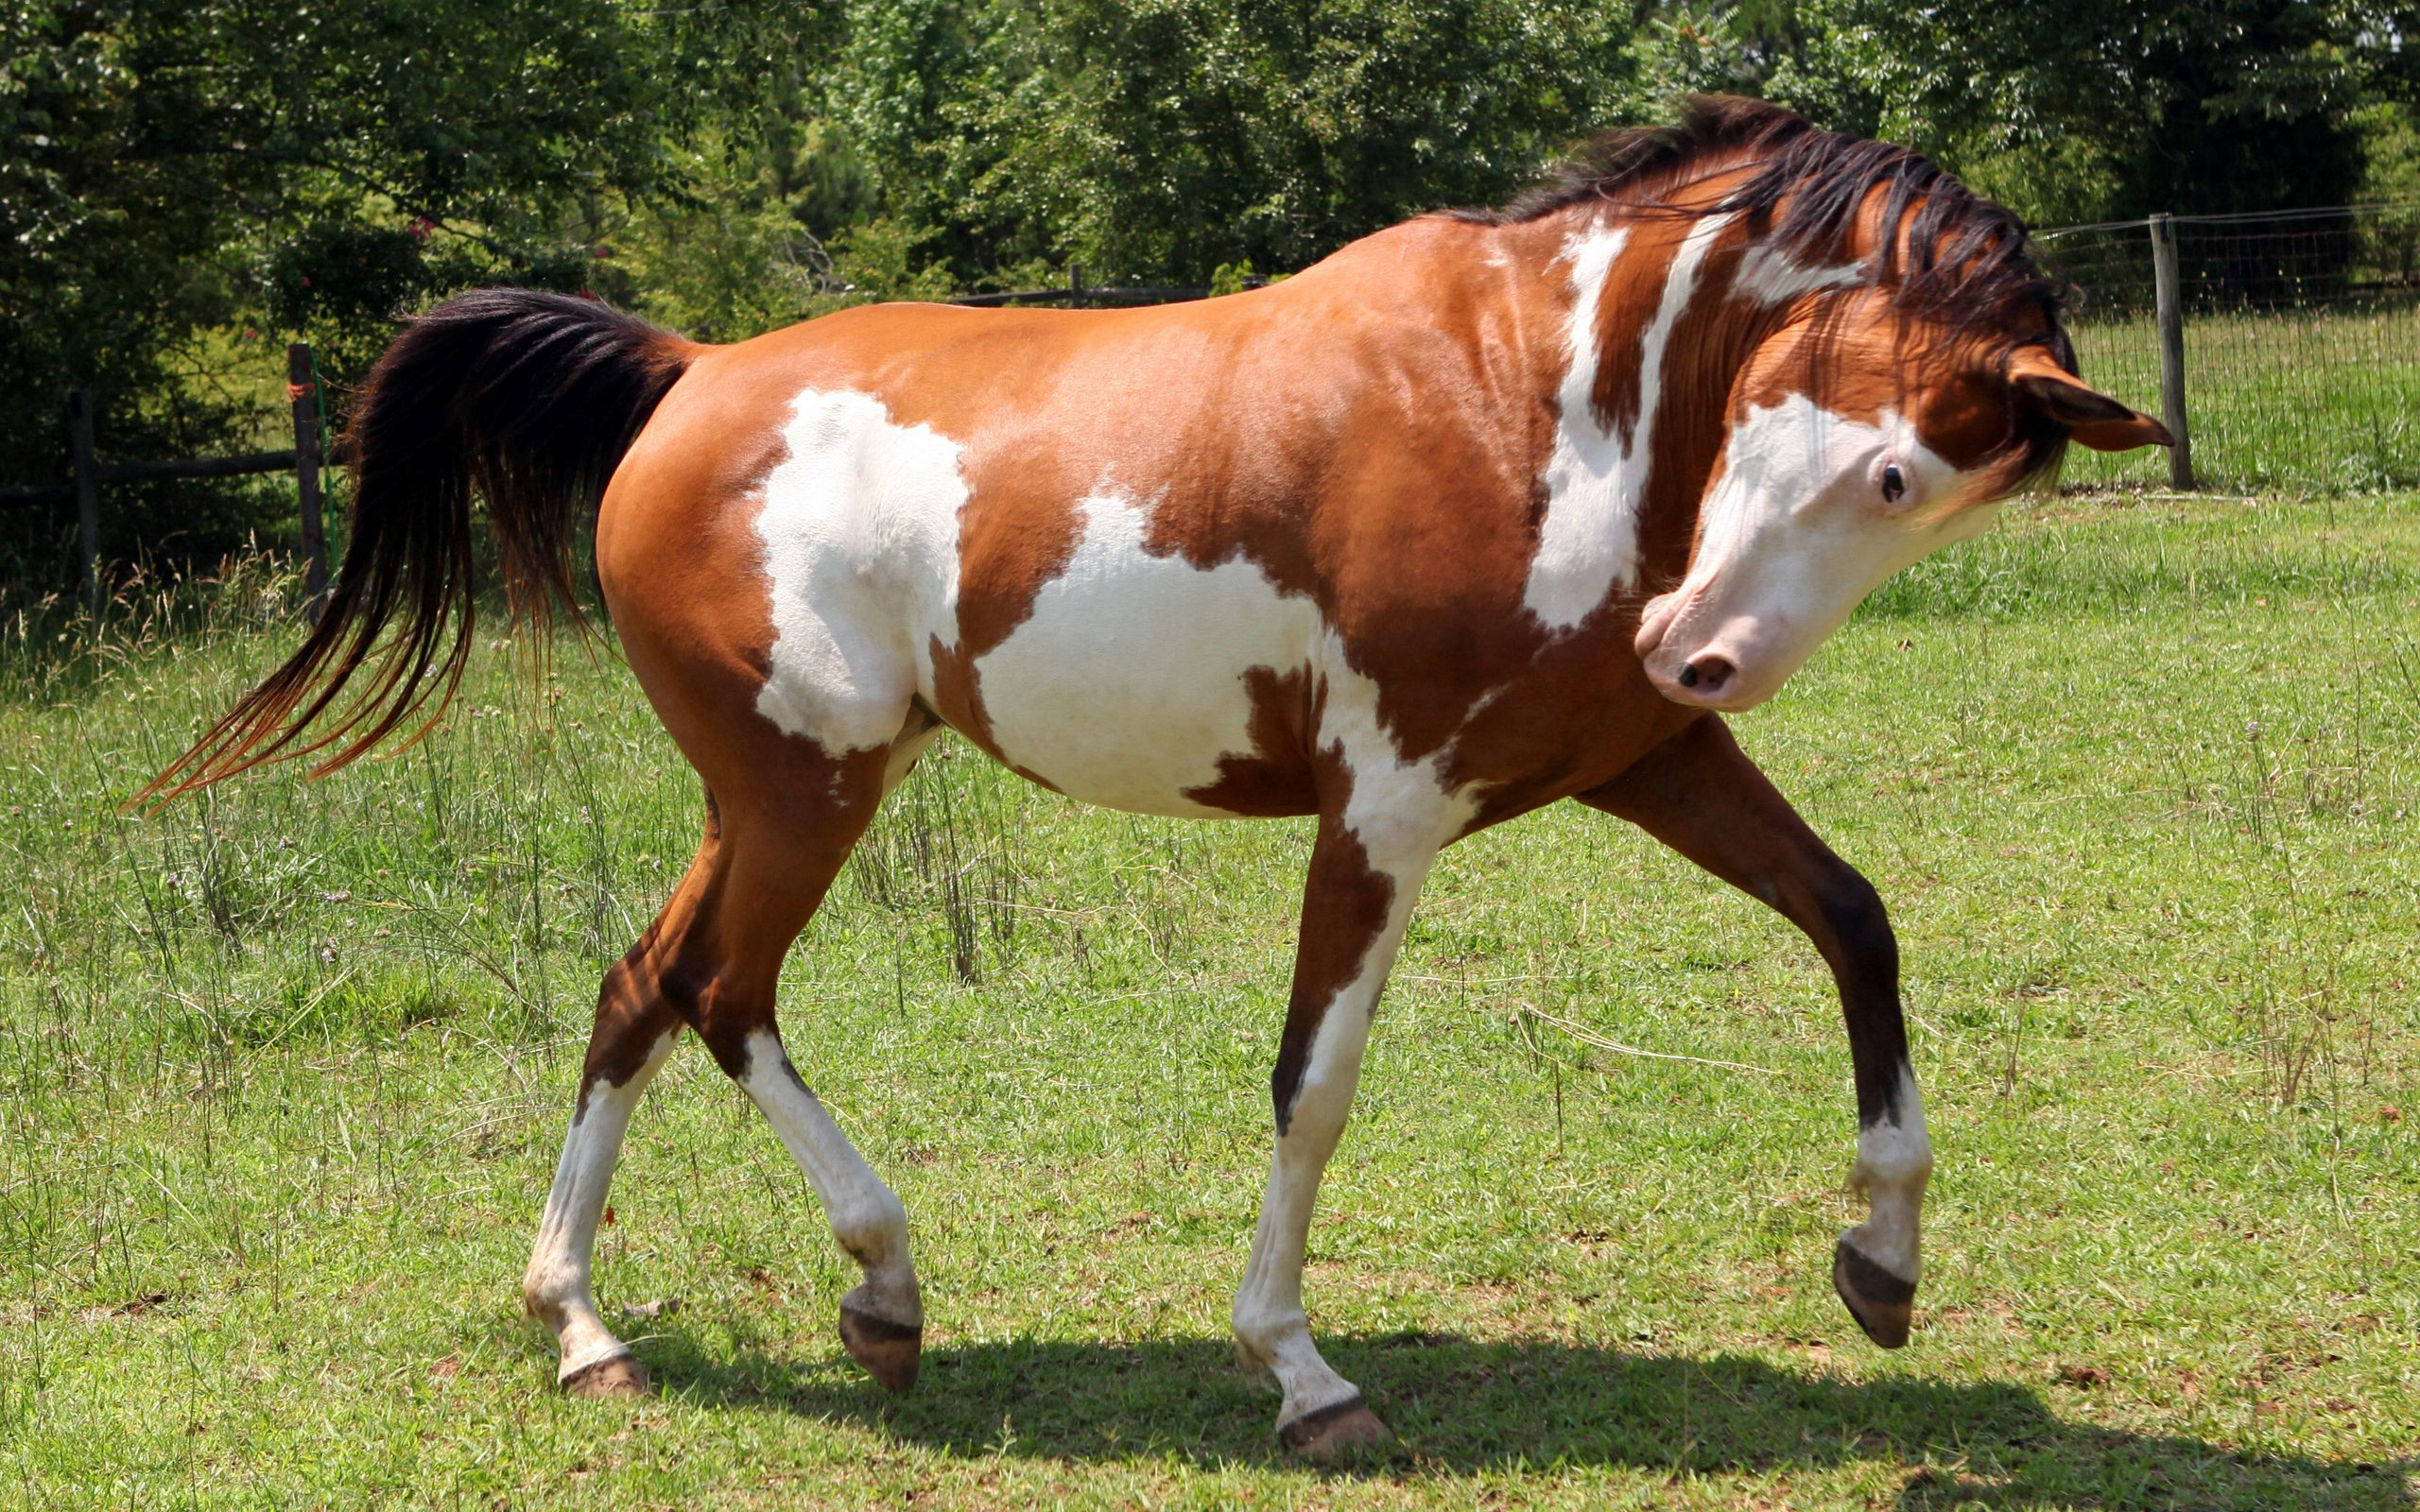 149812 download wallpaper Animals, Horse, Grass, Spotted, Spotty, Stroll screensavers and pictures for free